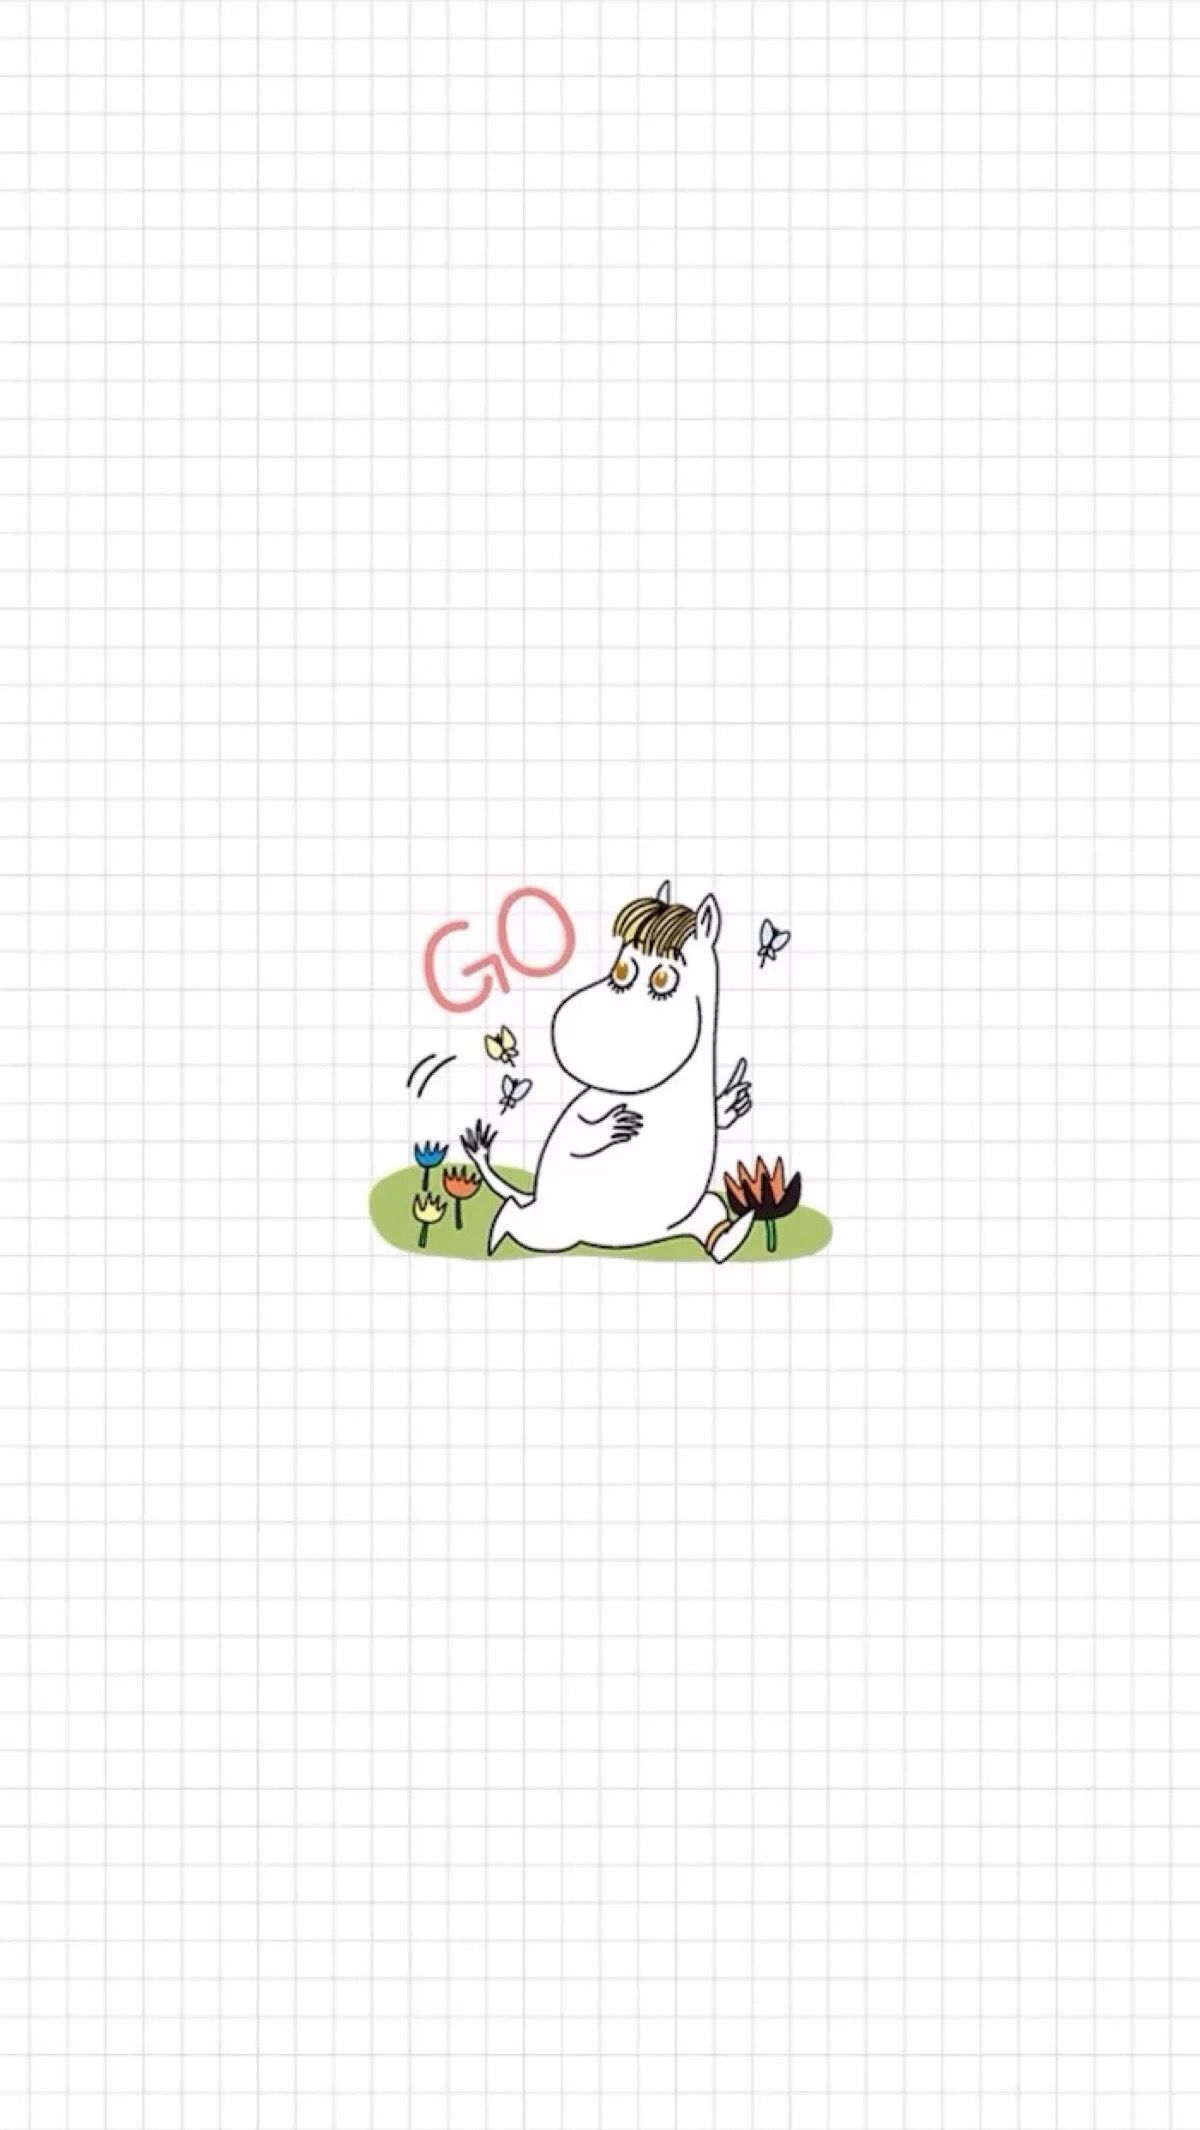 Moomin Moomin Wallpaper Cute Anime Wallpaper Cartoon Wallpaper